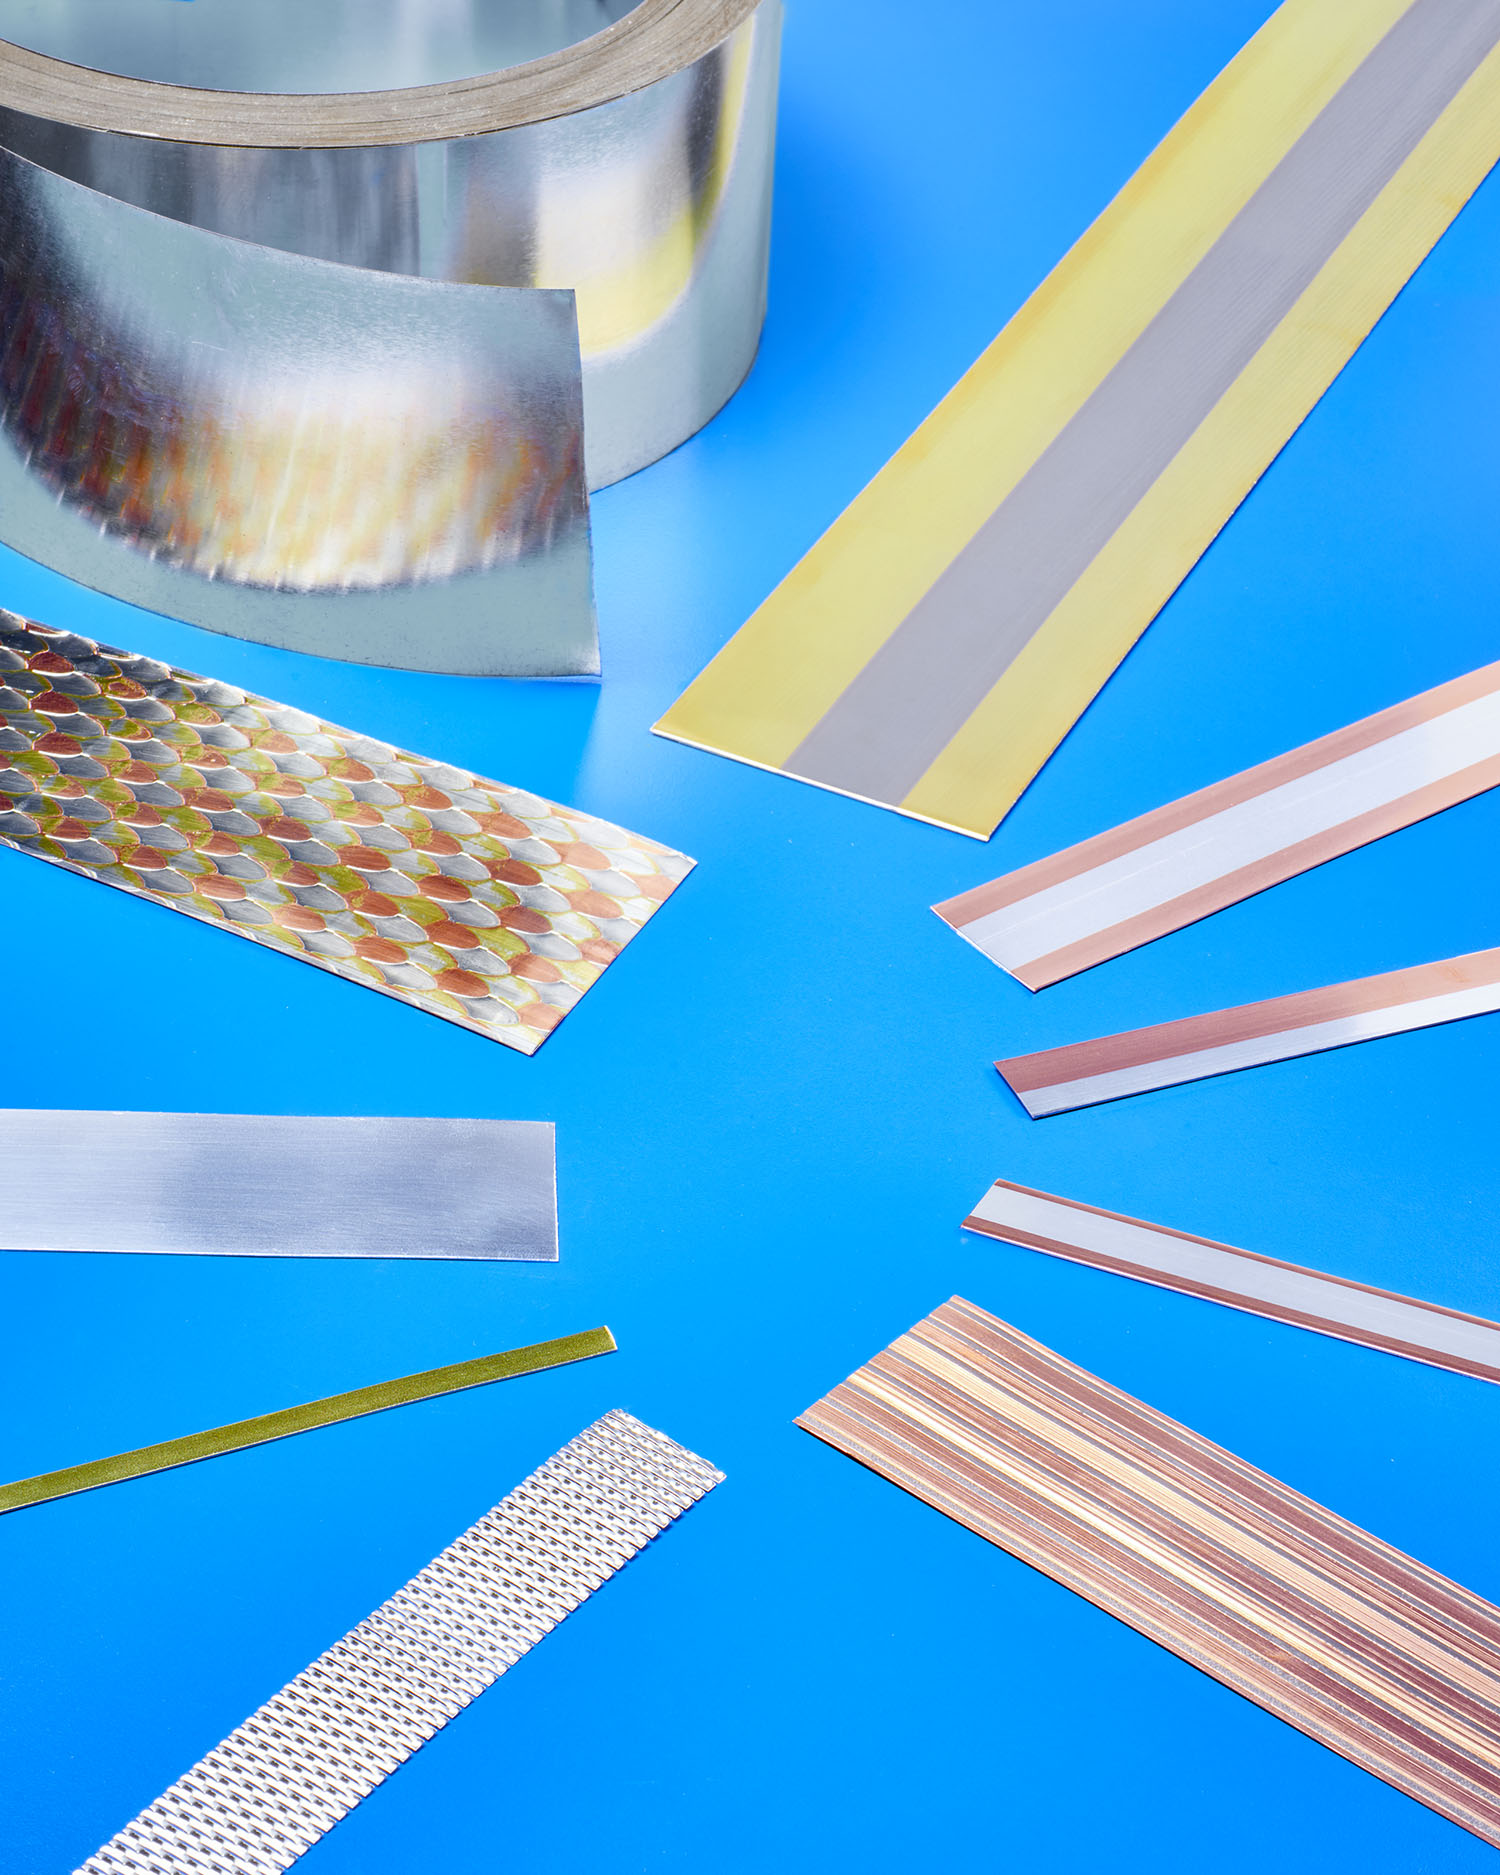 COMPOSITE CLAD METAL STRIP COMBINES BEST PROPERTIES OF EACH METAL